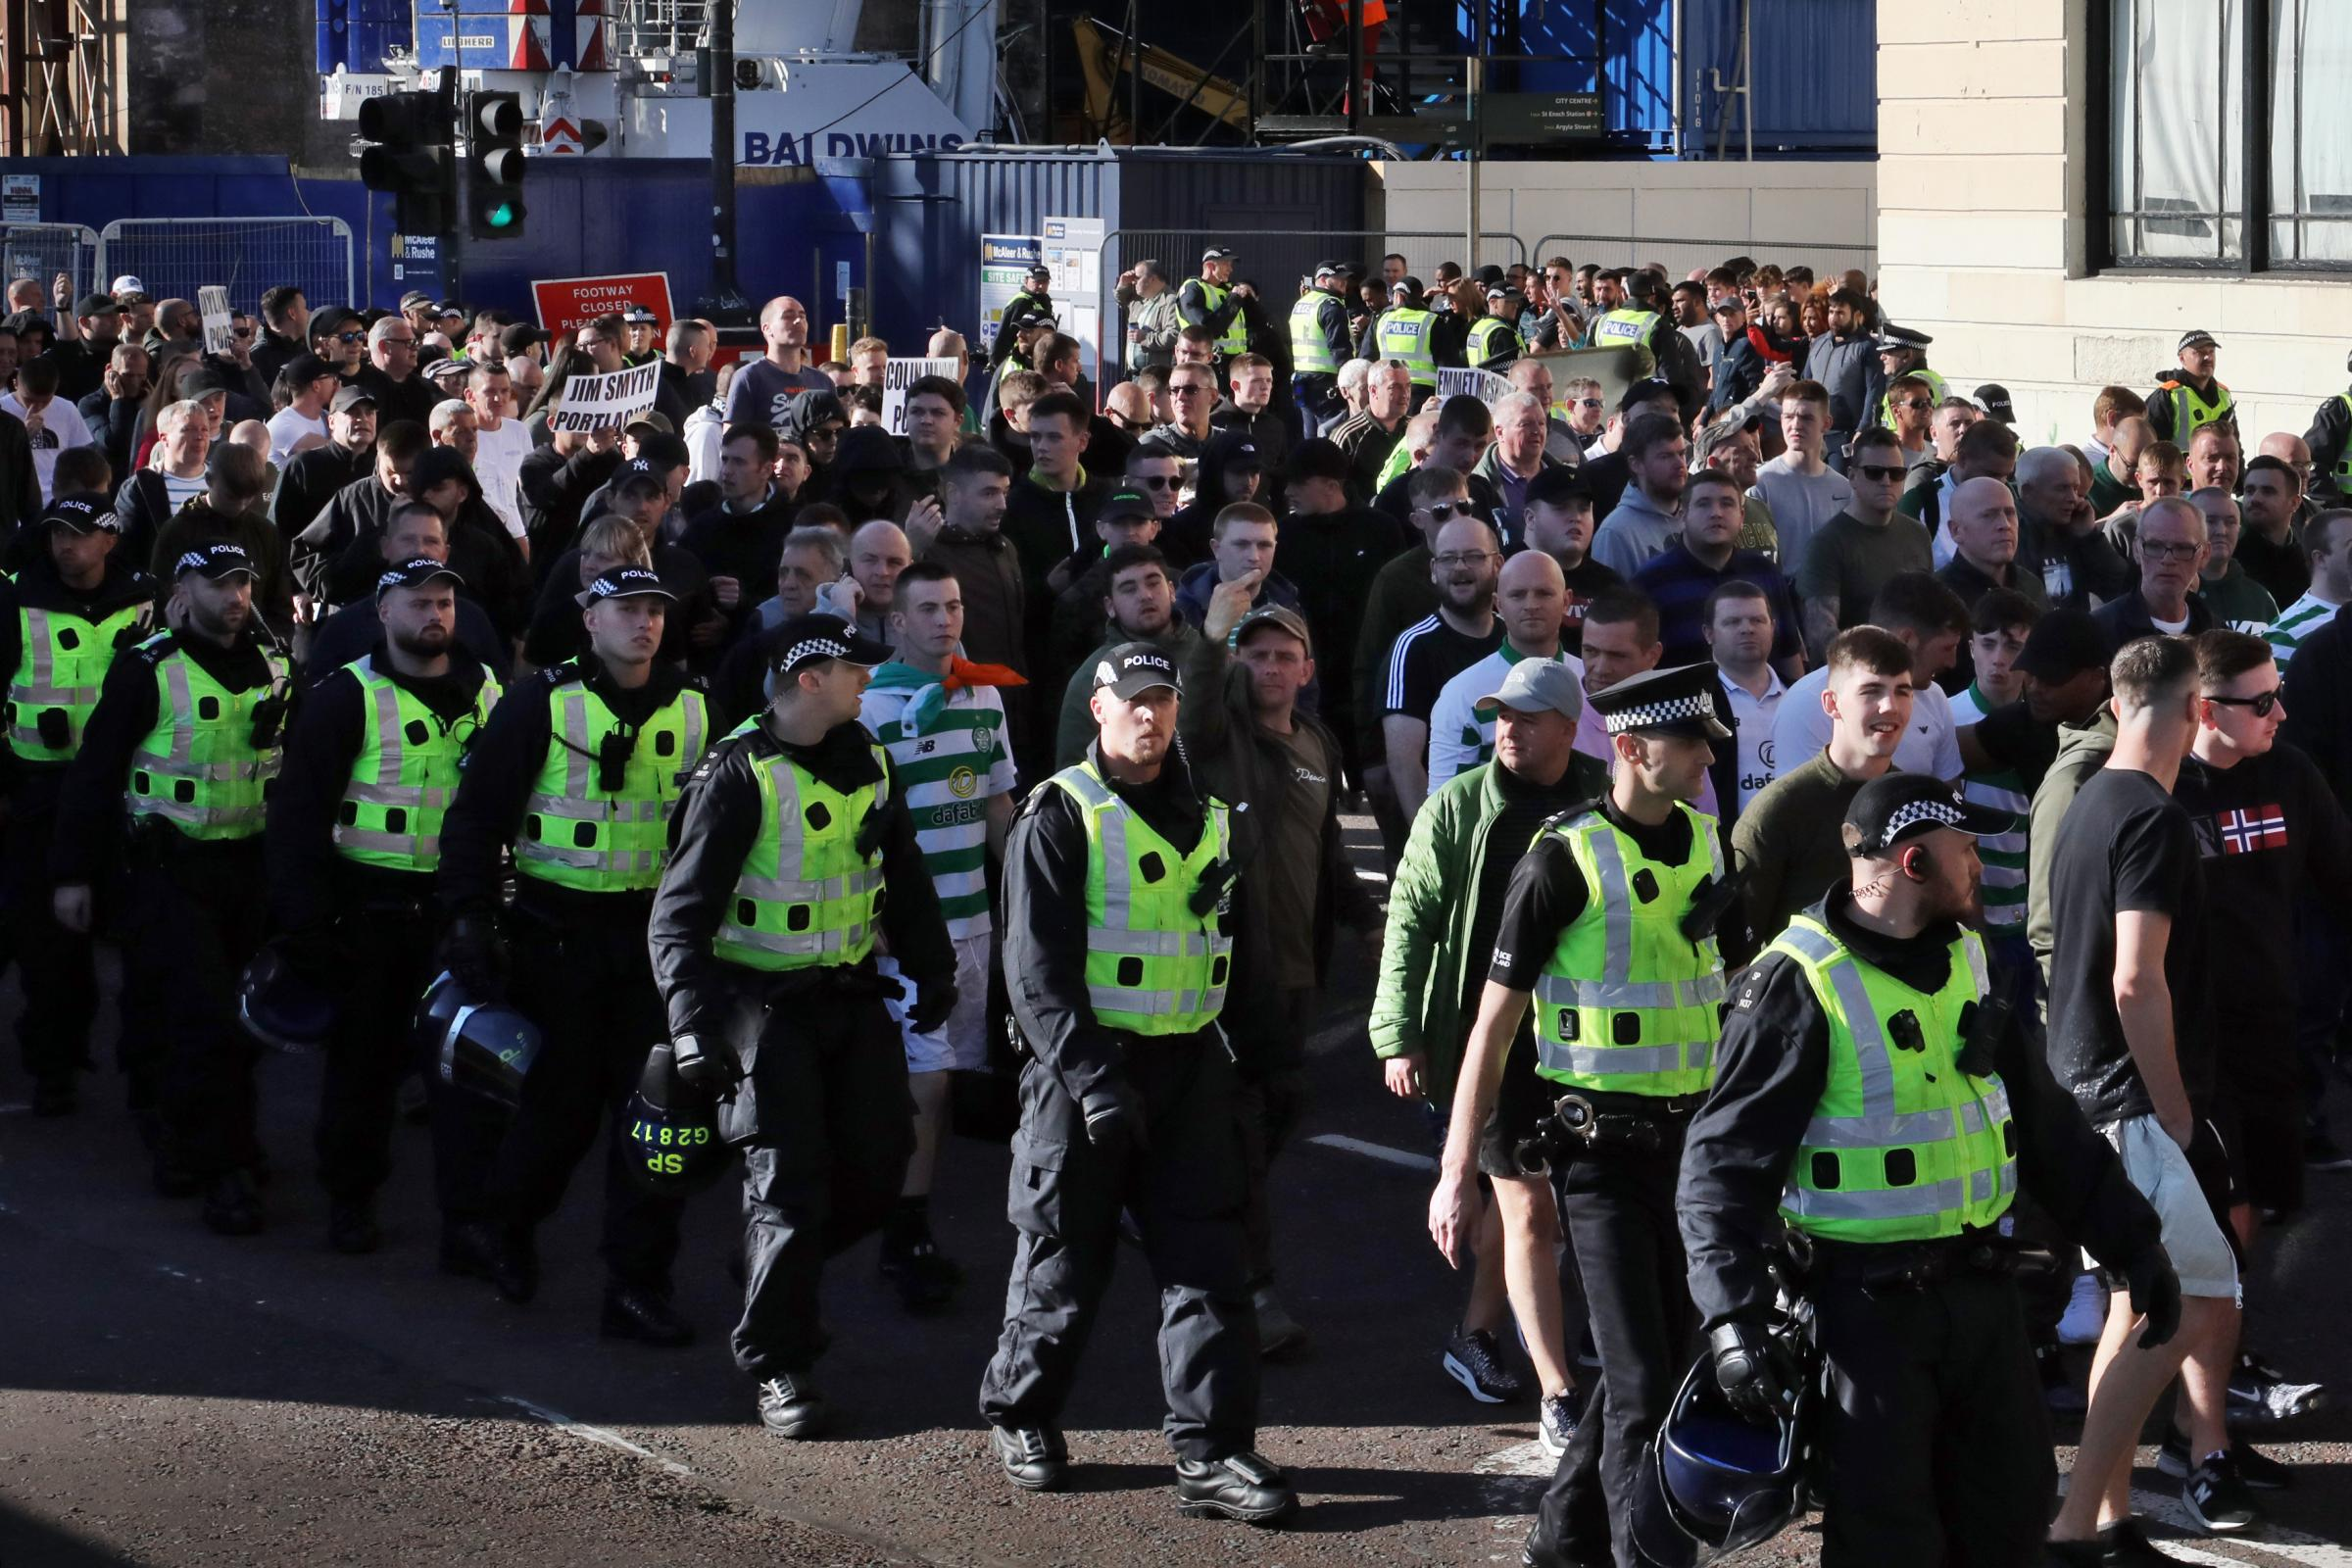 Council: Glasgow 'must pull together' against sectarian violence